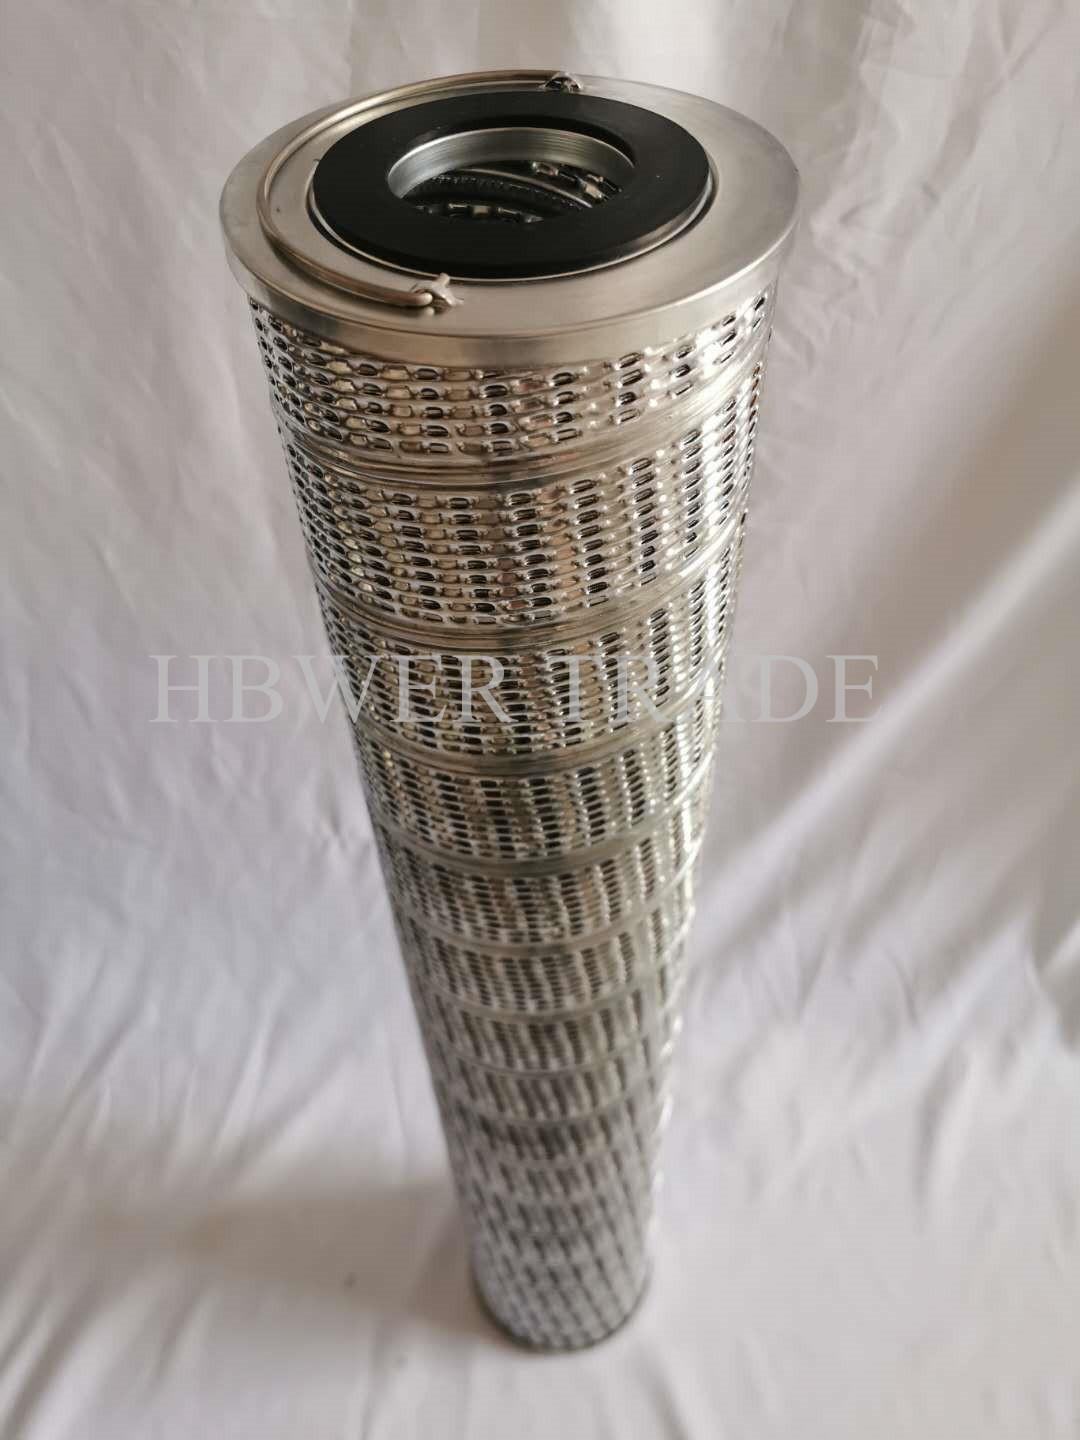 Made in China Fuel filter element KF6036-5 oil filter element agglomerator filte 5